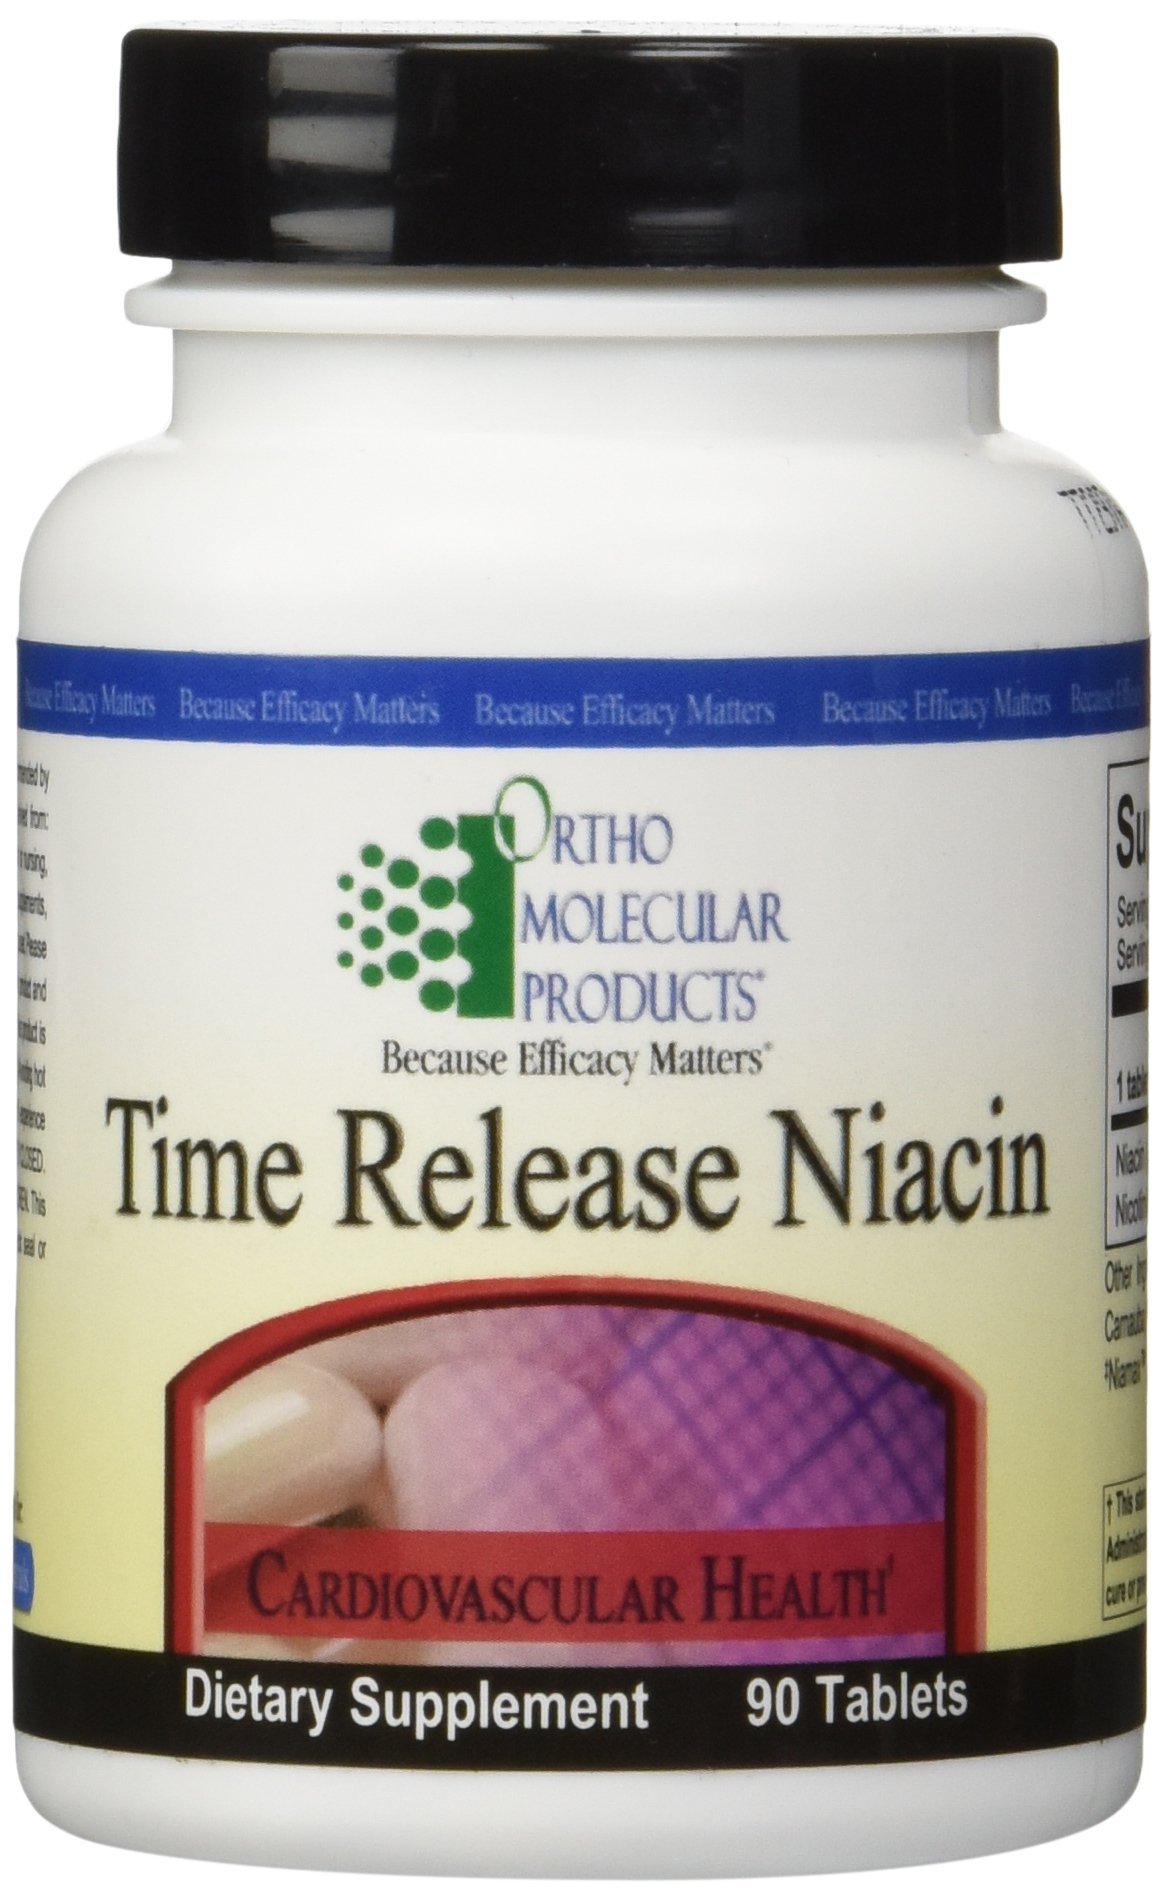 Ortho Molecular - Time Release Niacin - 90 Tablets